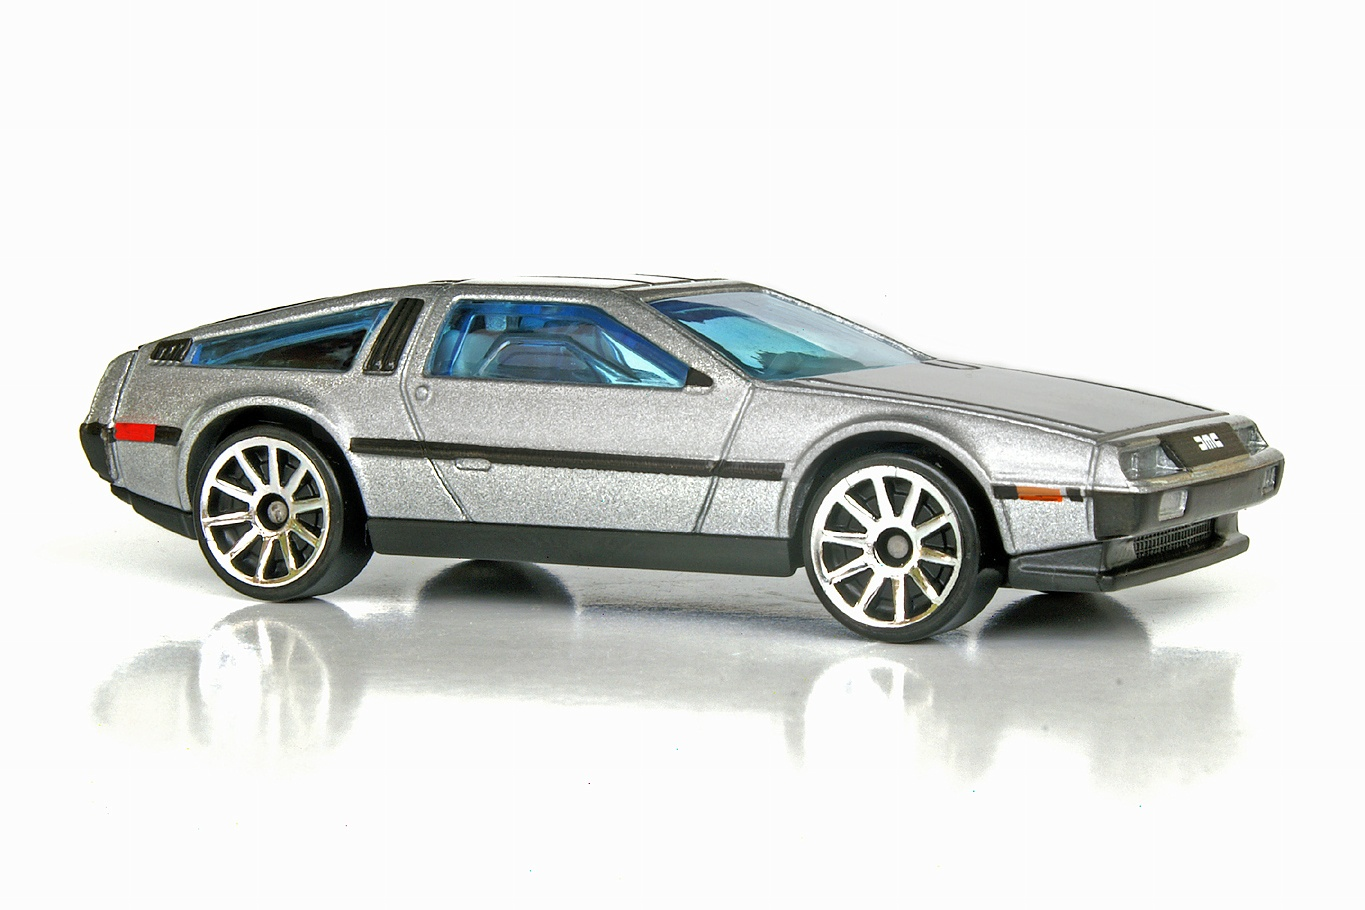 '81 DeLorean DMC-12